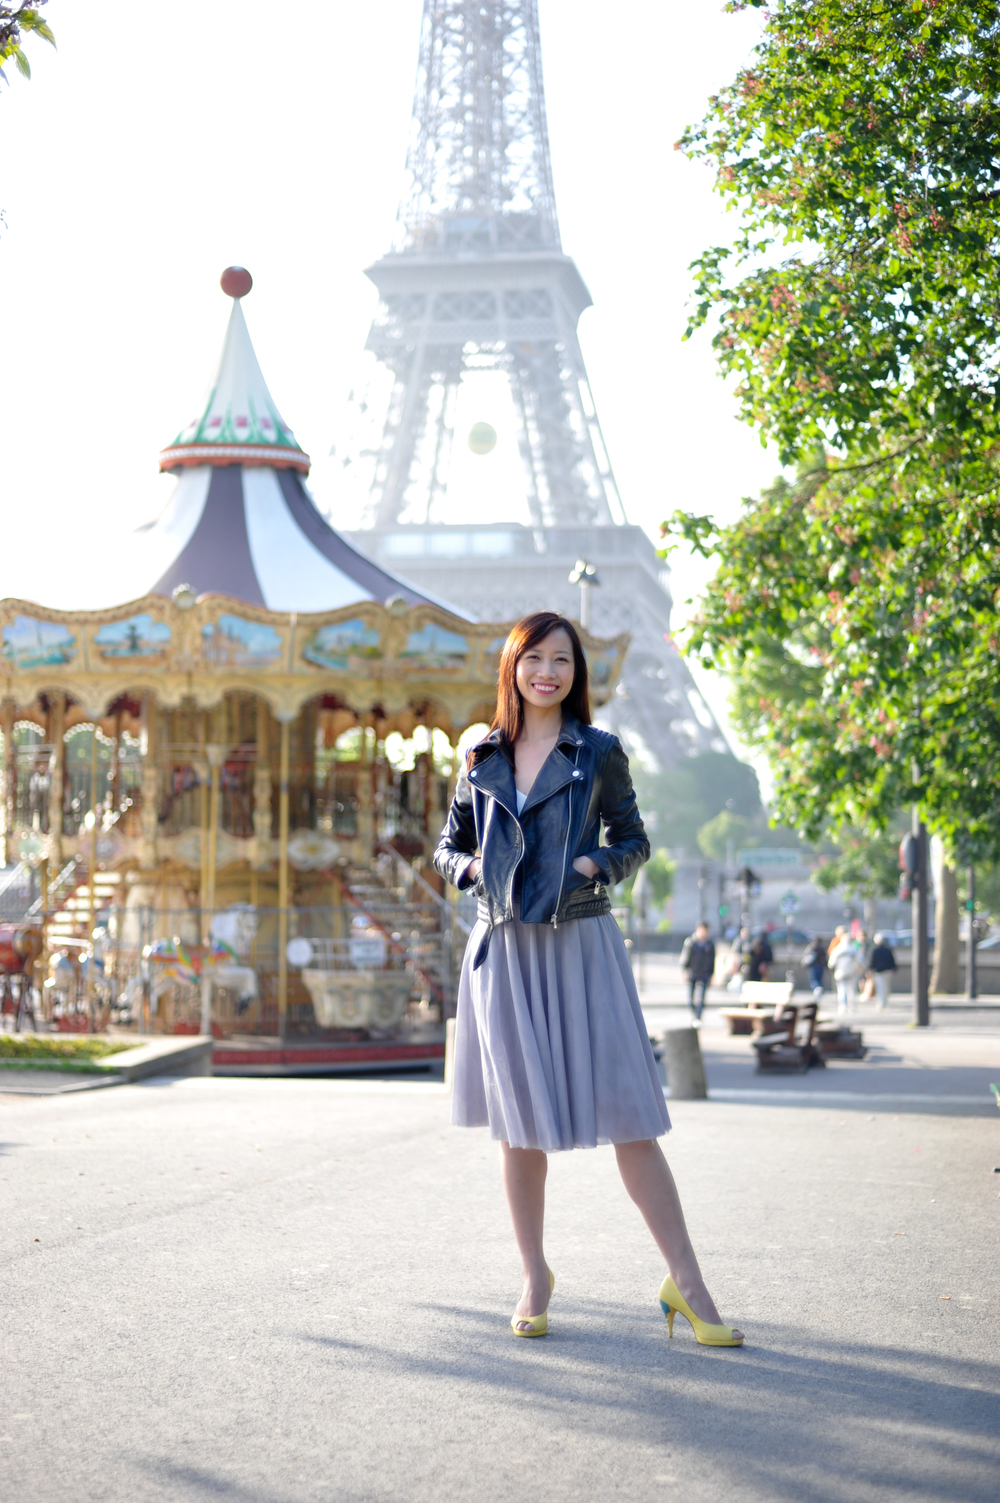 Stylish solo traveller in Paris